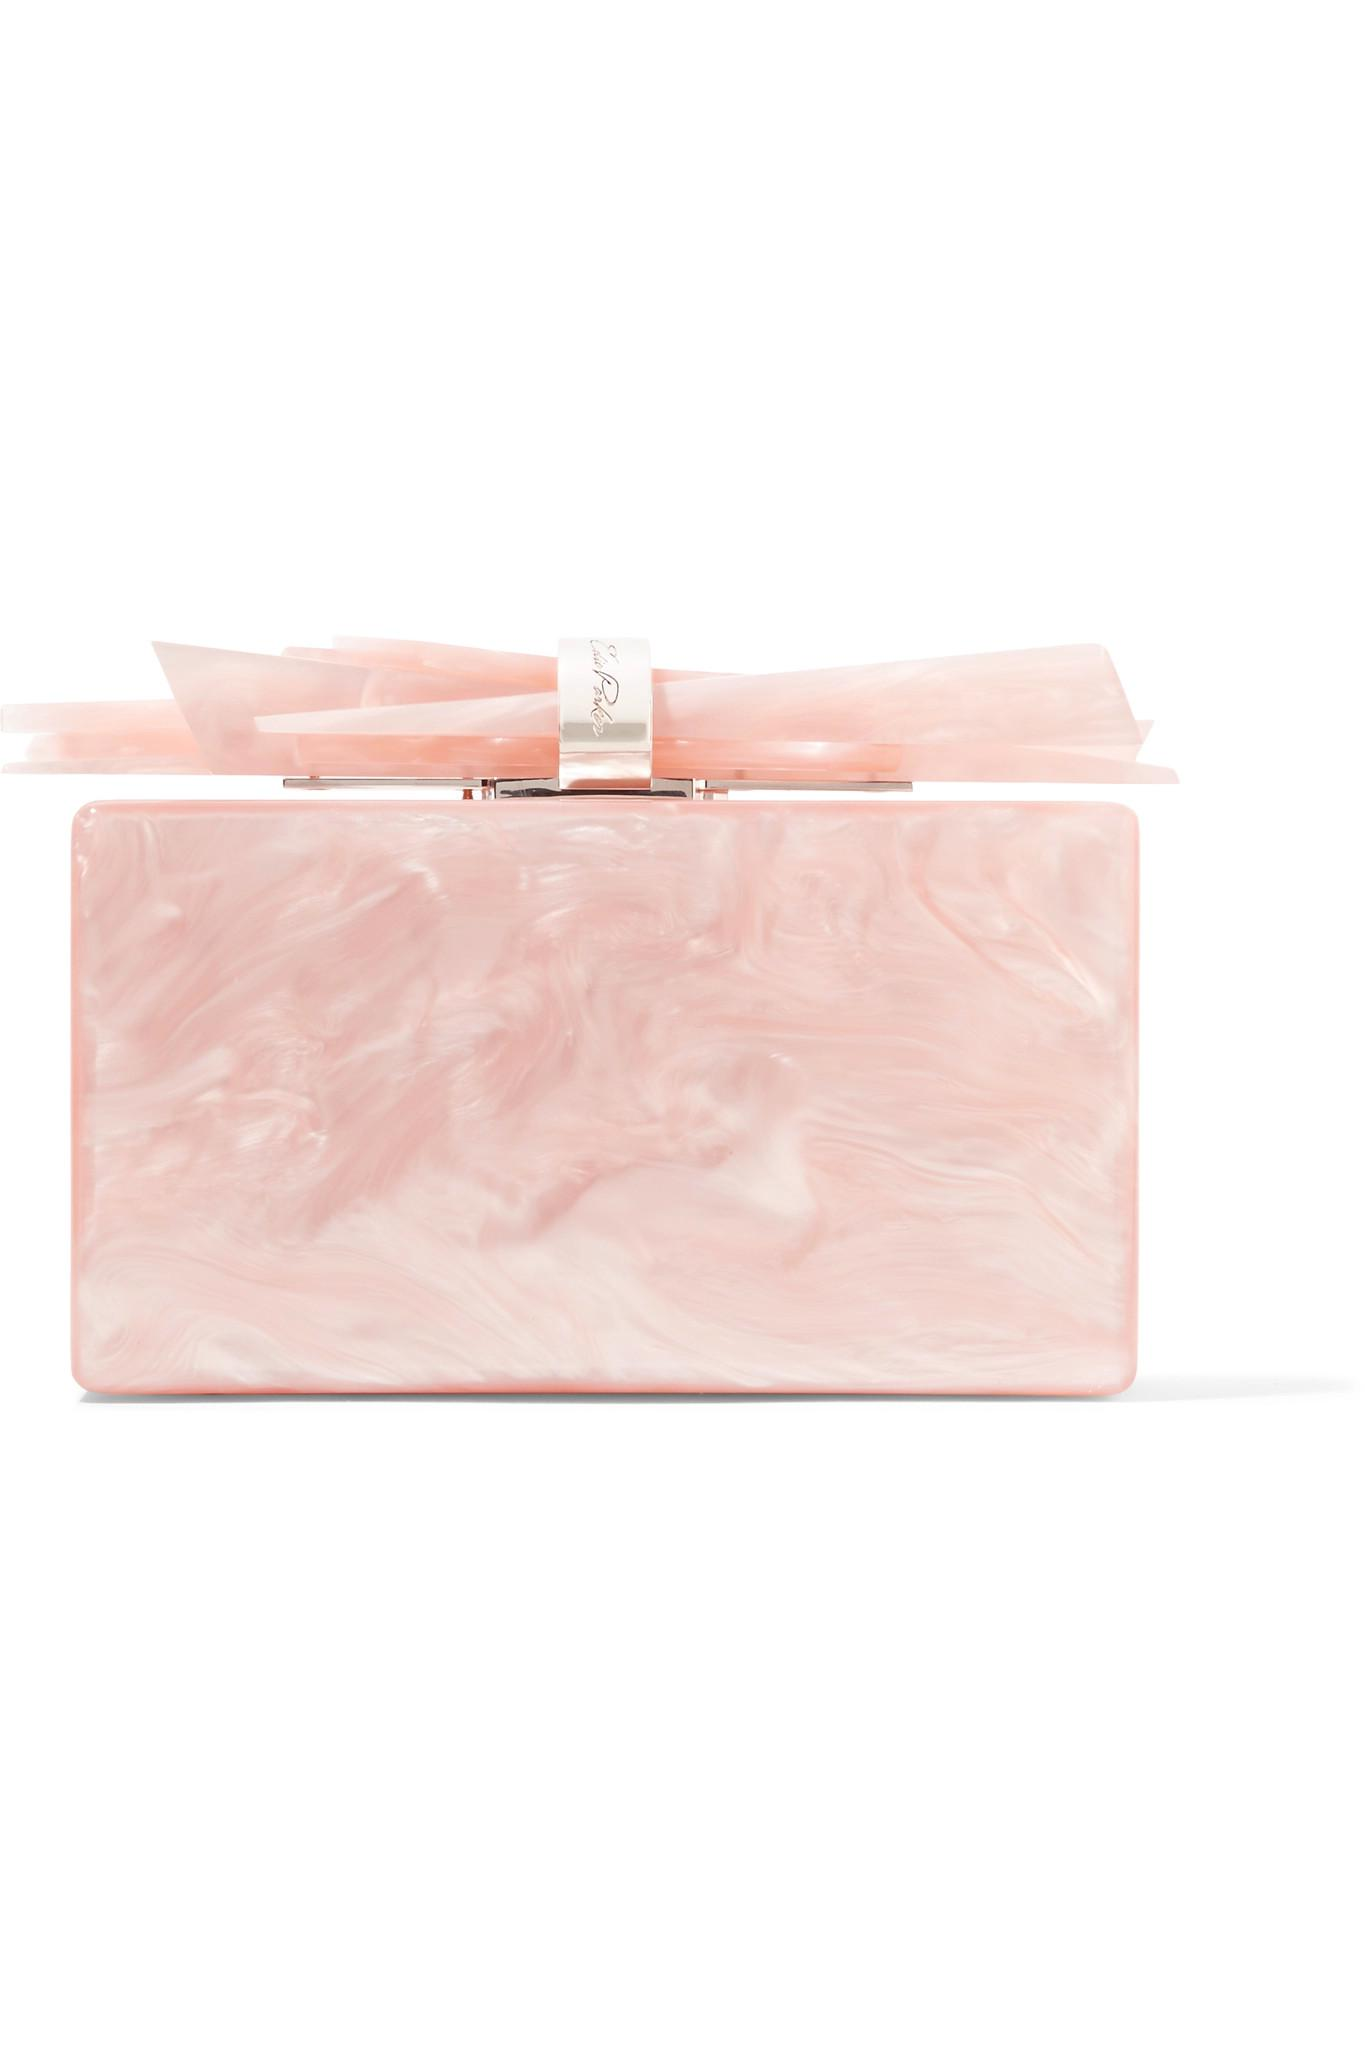 Wolf clutch - Pink & Purple Edie Parker Fashionable Outlet For Cheap Wide Range Of Cheap Price Genuine Sale Online Buy Cheap Shopping Online lOTsrsFo